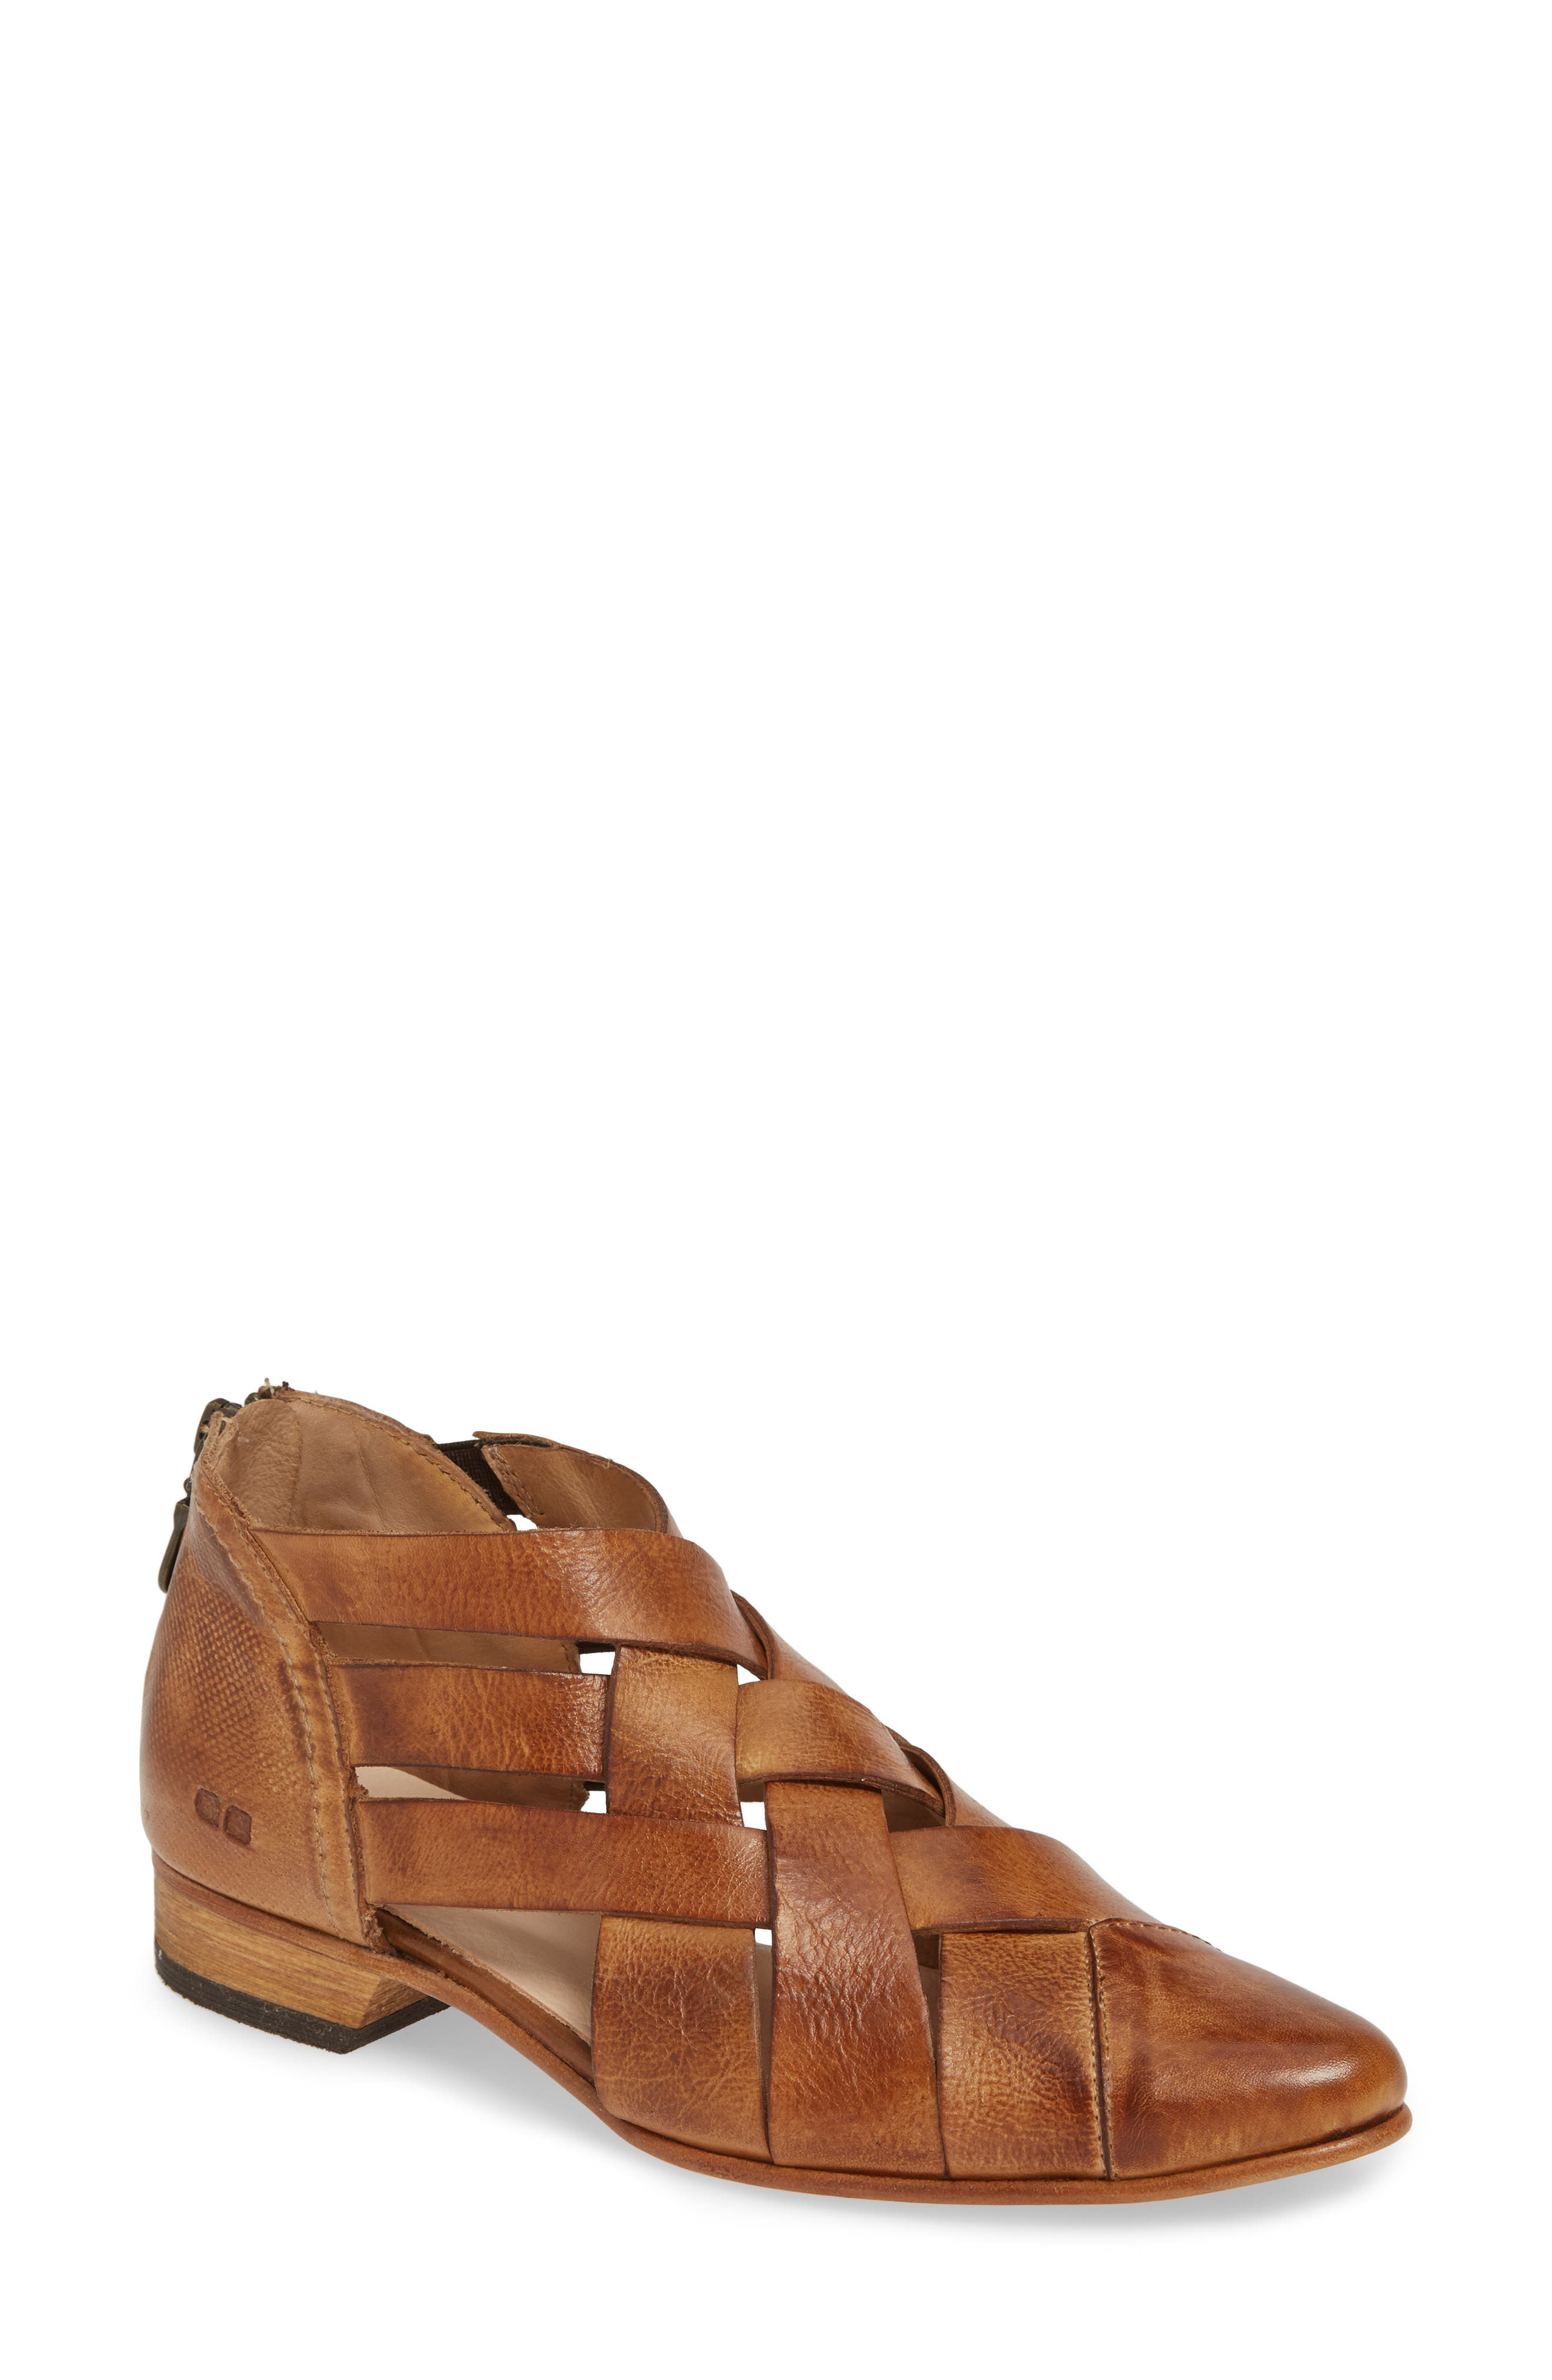 Bed Stu Brittany Woven Bootie- Brown